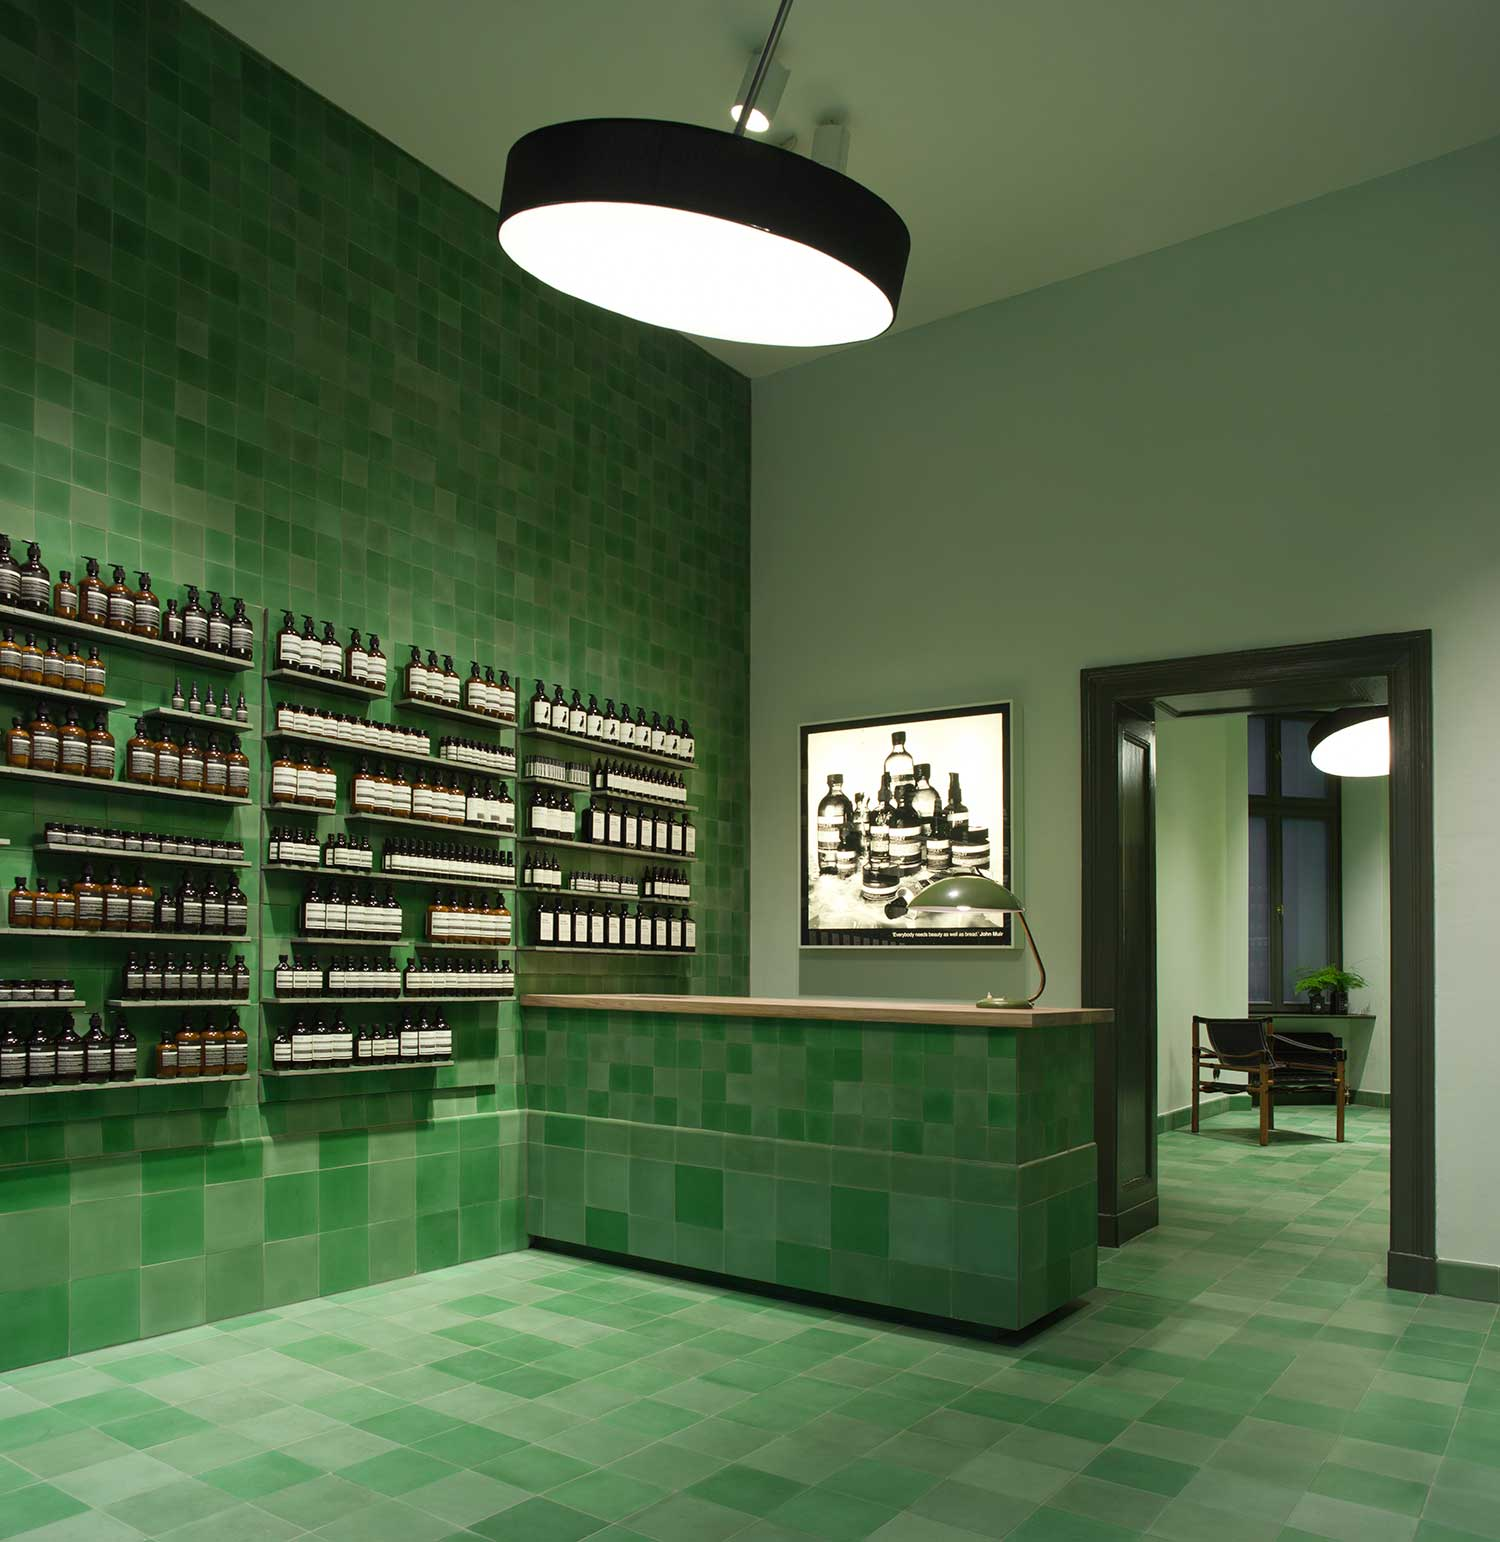 Shop Berlin aesop berlin store by weiss heiten yellowtrace